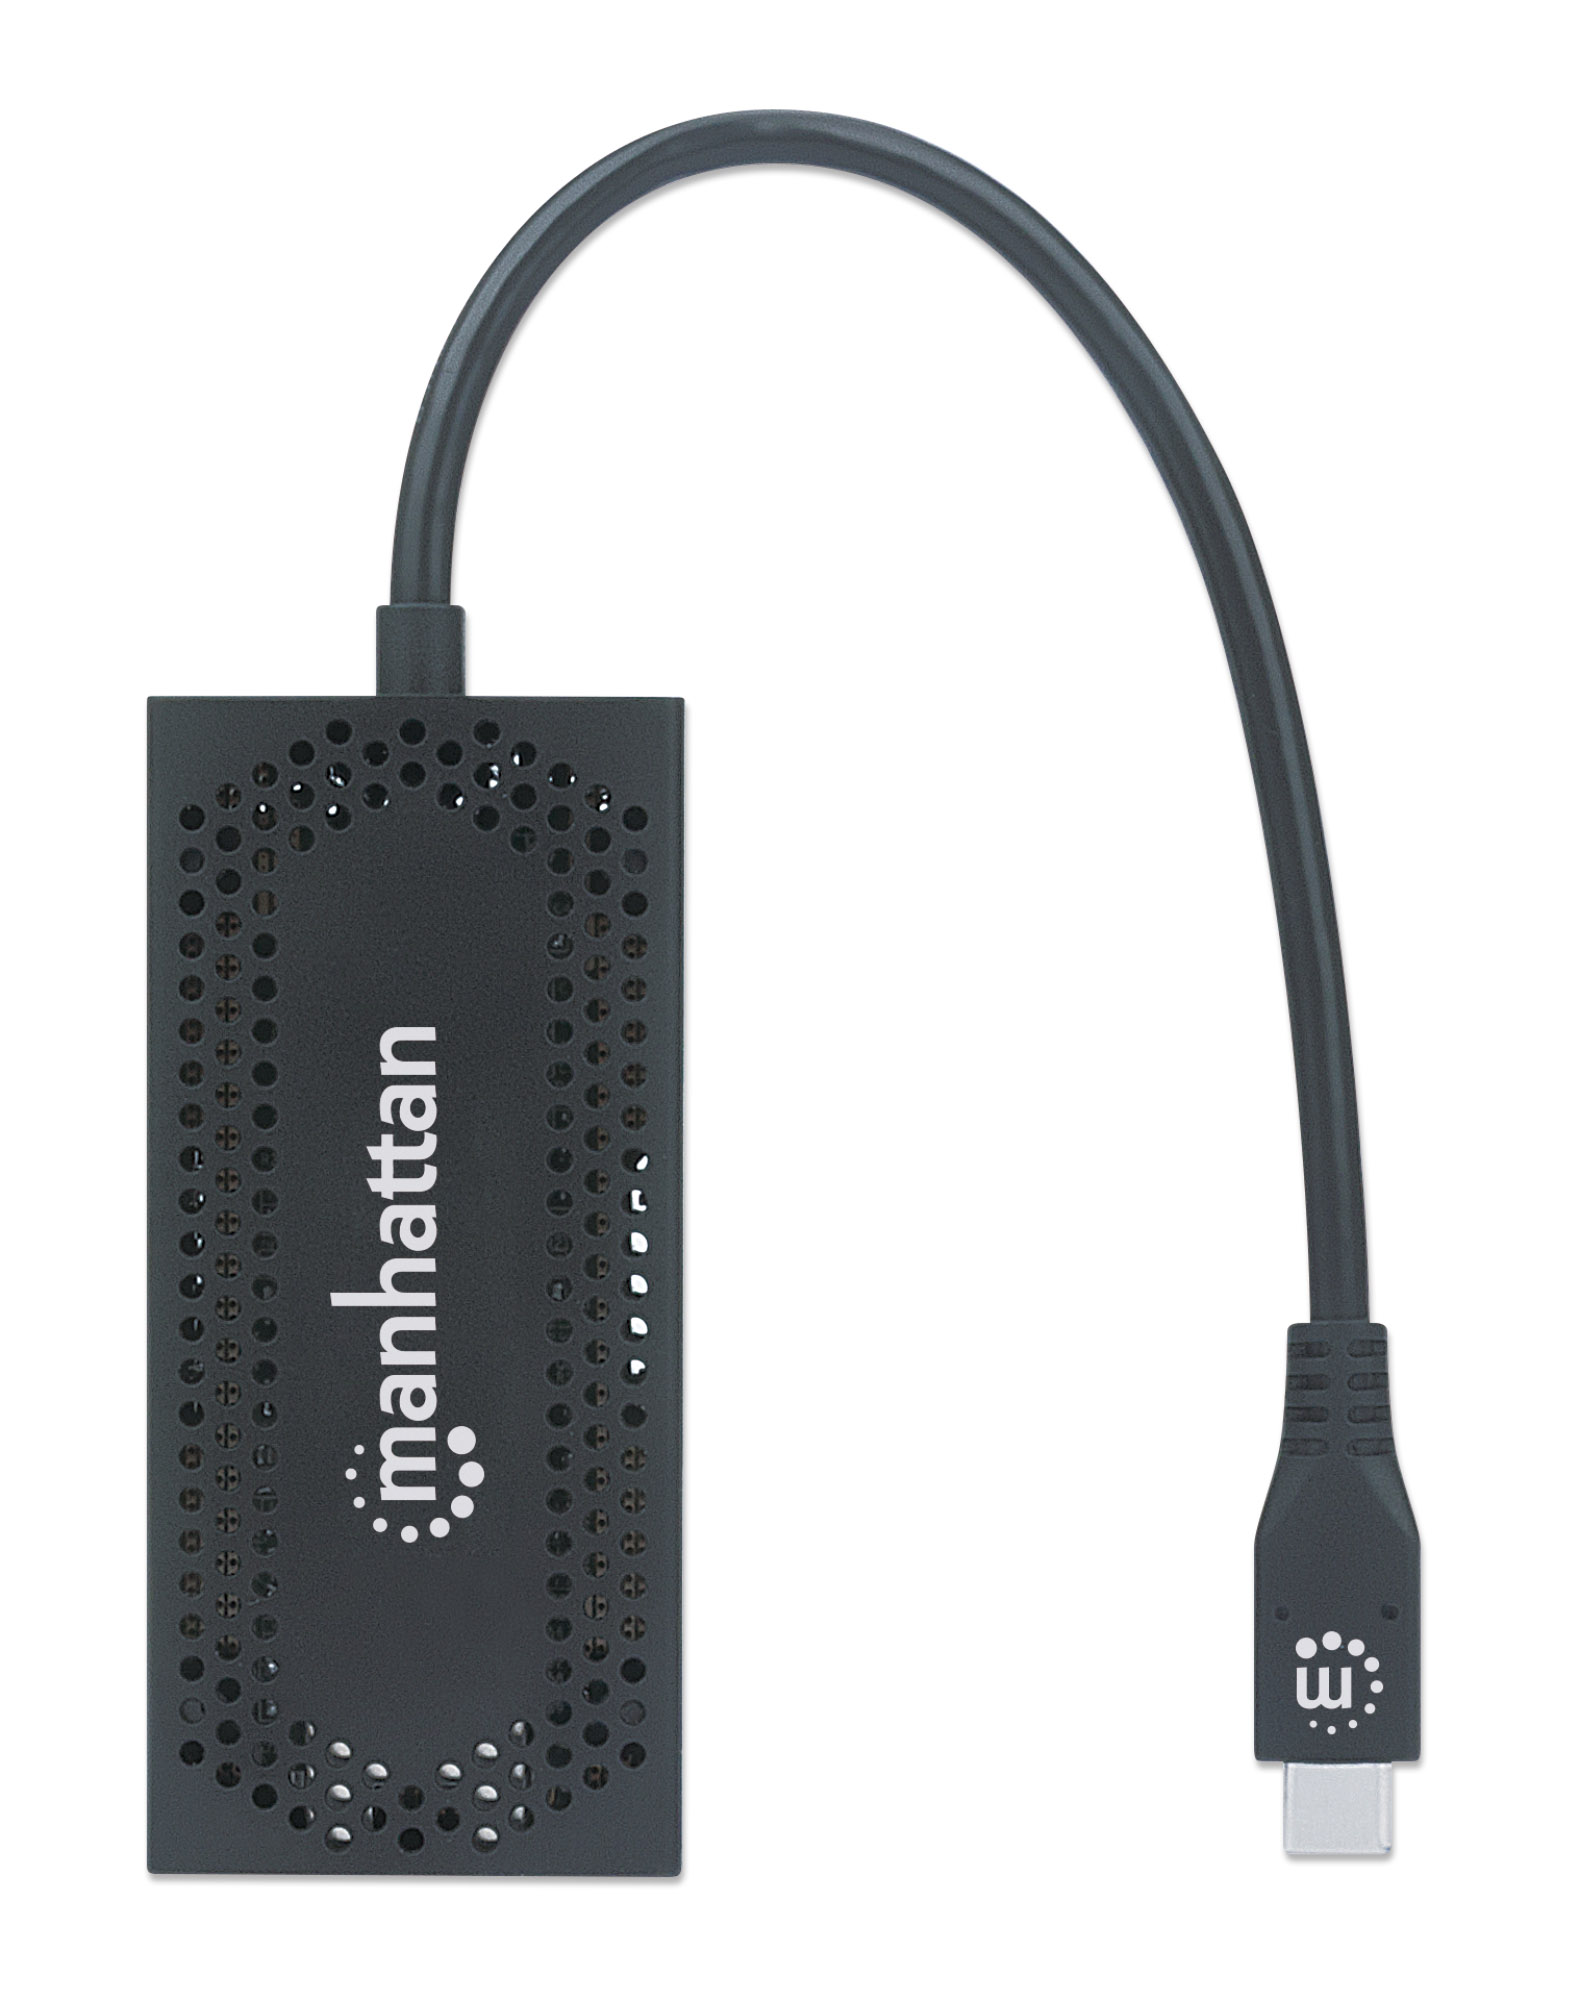 USB-C to 5GBASE-T Ethernet Adapter